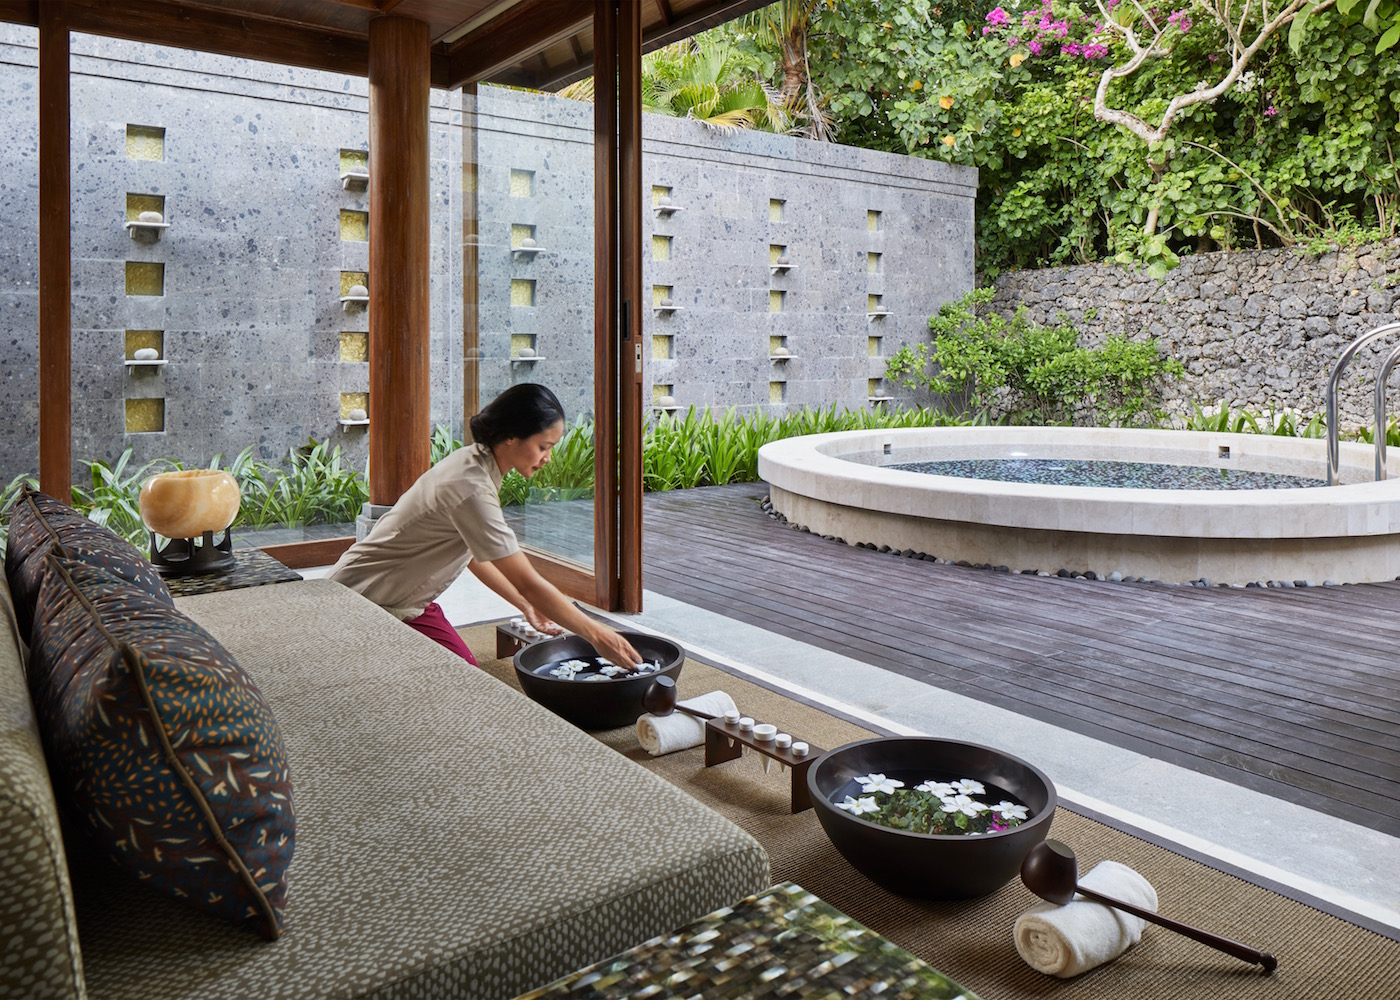 Hyatt Regency Bali is upping Sanur's spa-game with an all-embracing and world-class wellness destination